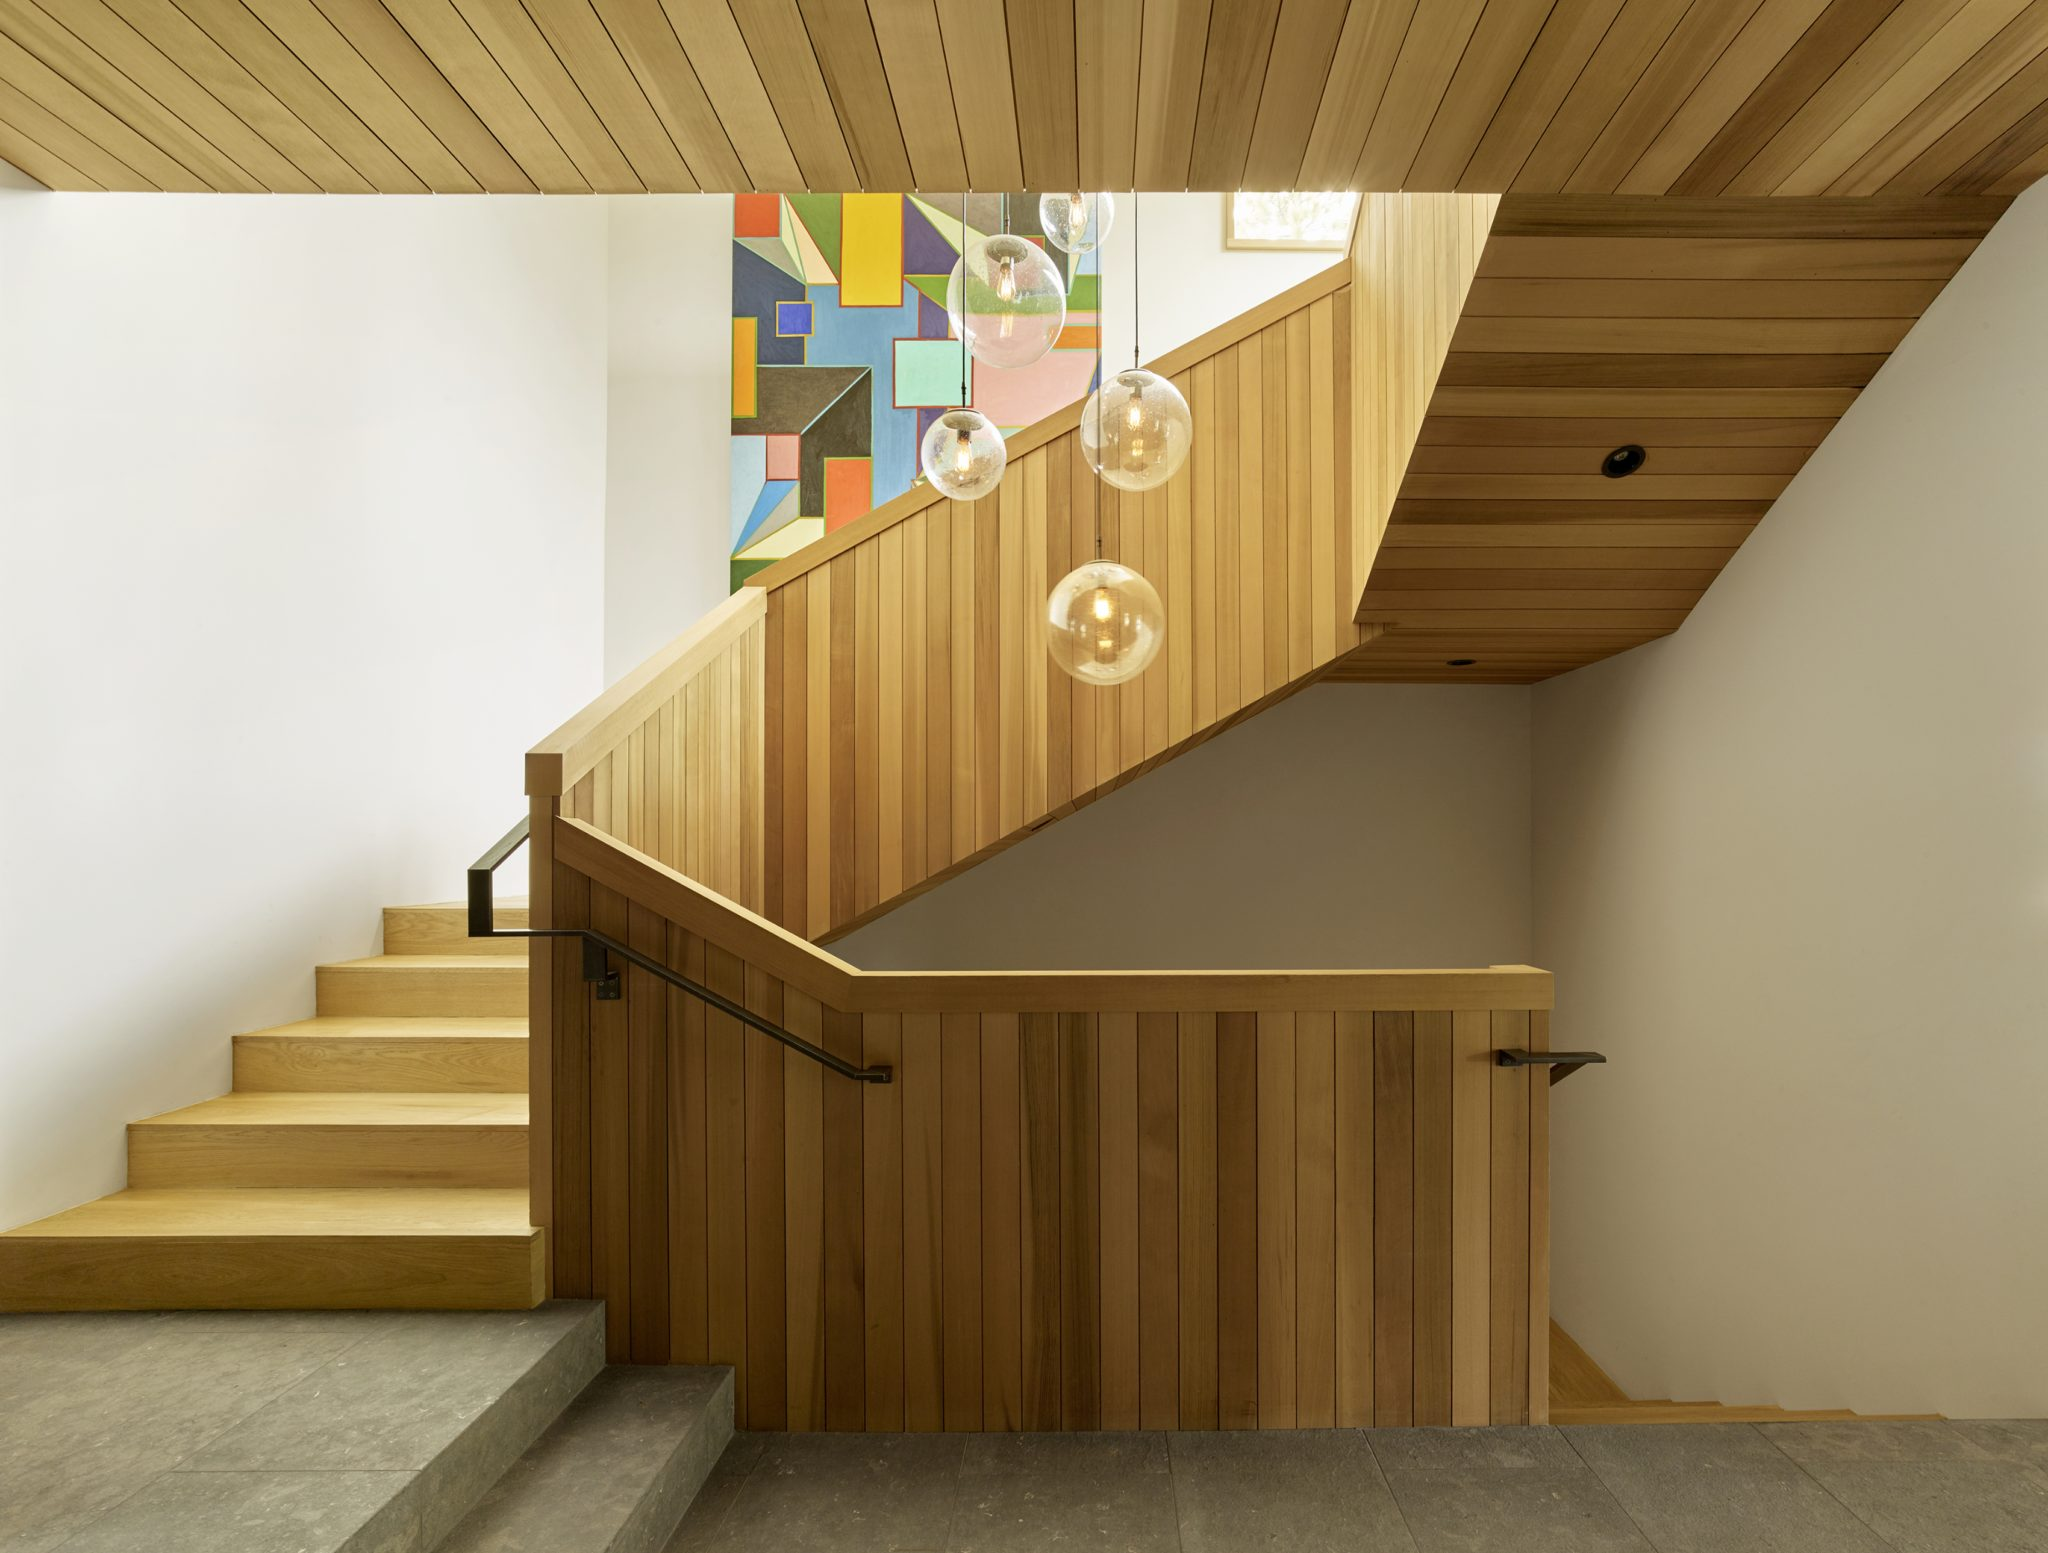 Tahoe Marvel, Stair detail in oak paneling with a custom Chandelier. by Kelly Hohla Interiors